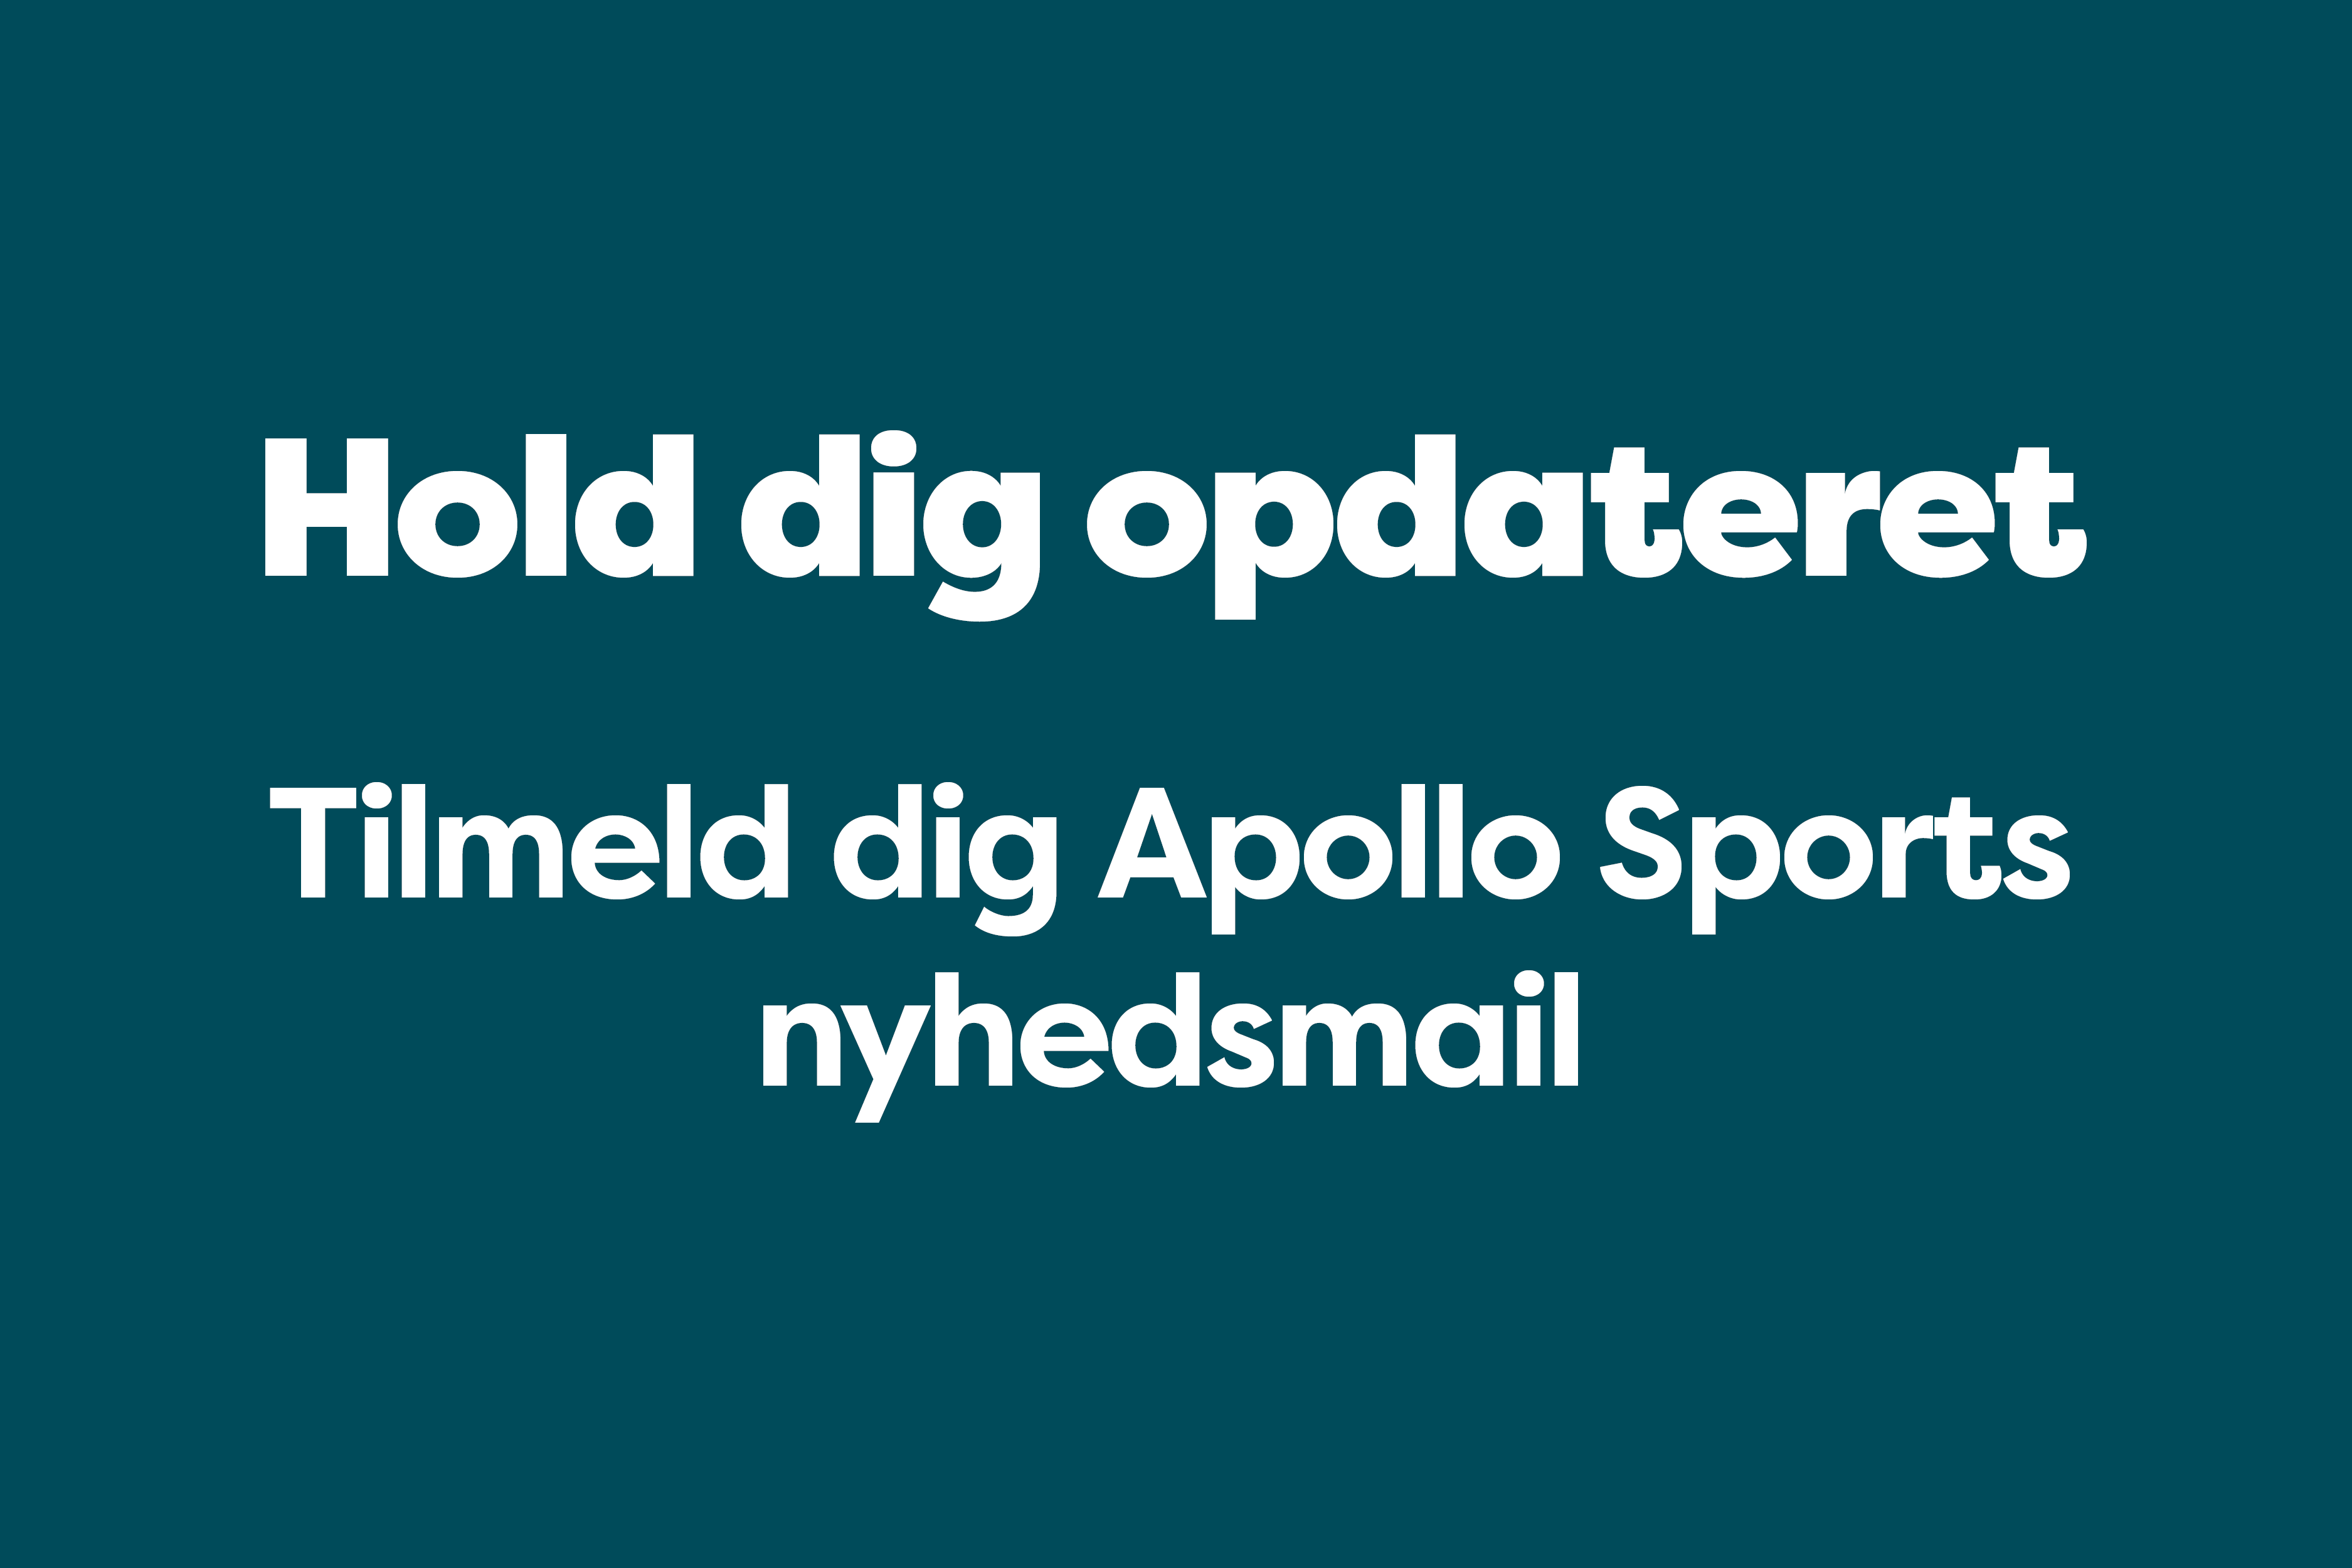 Apollo Sports Nyhedsmail